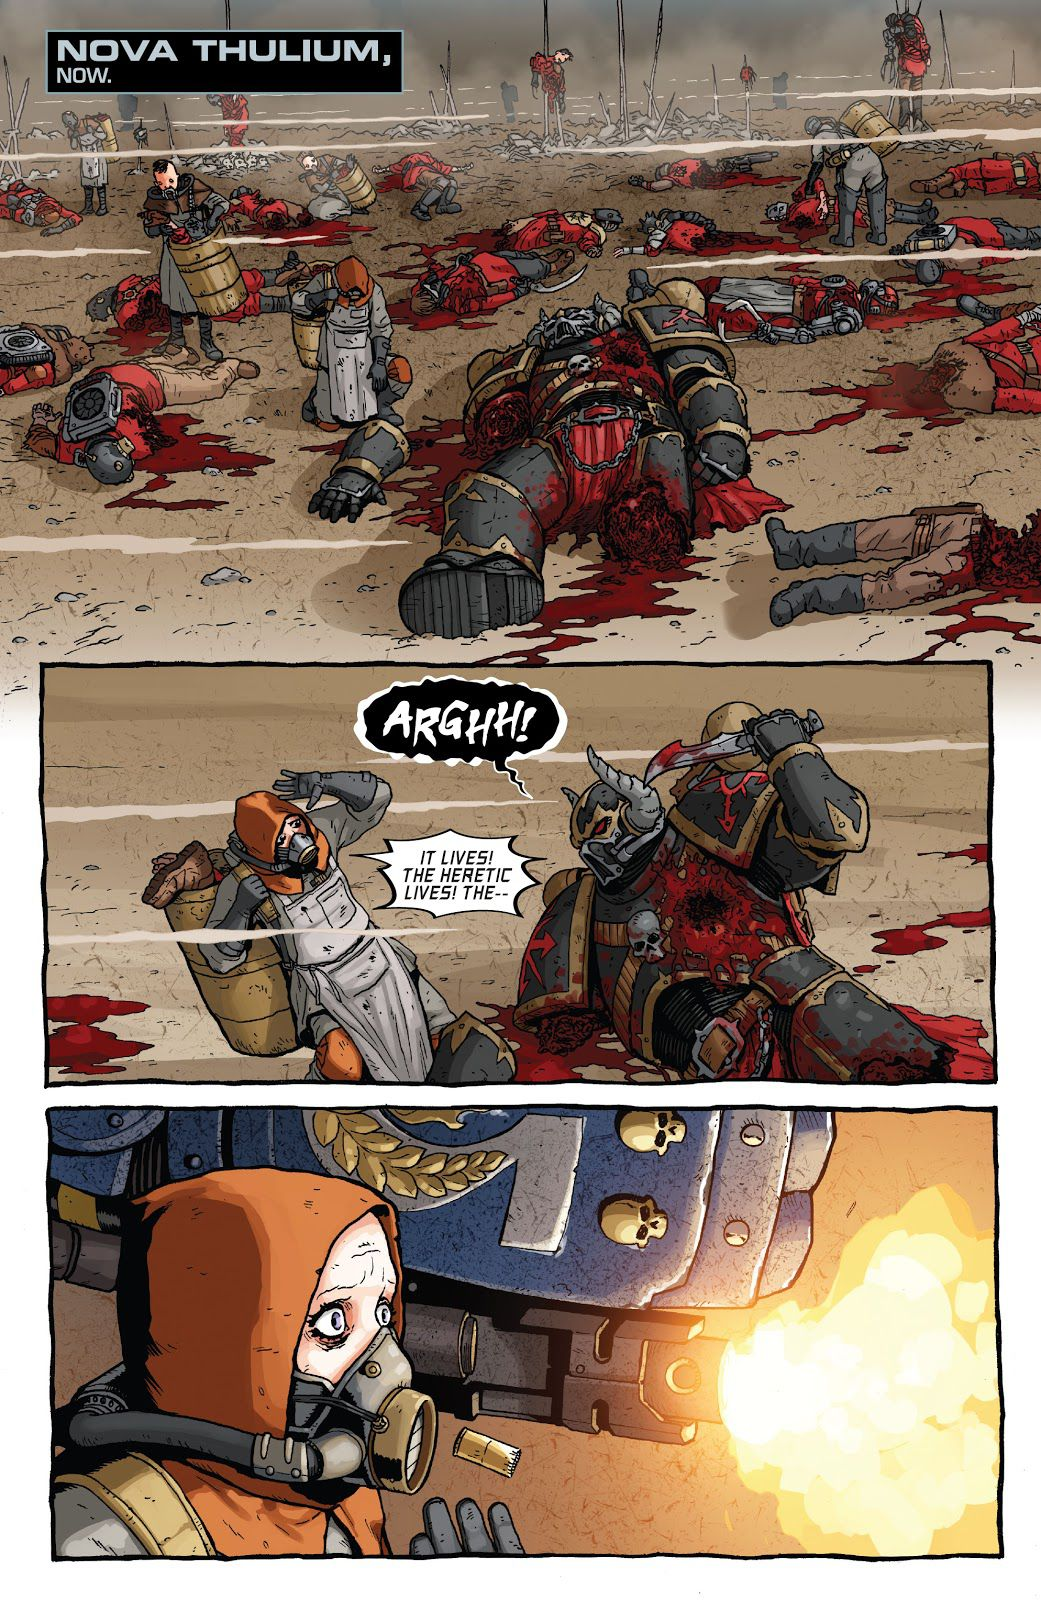 A page showing a field littered with the corpses of Chaos Space Marines